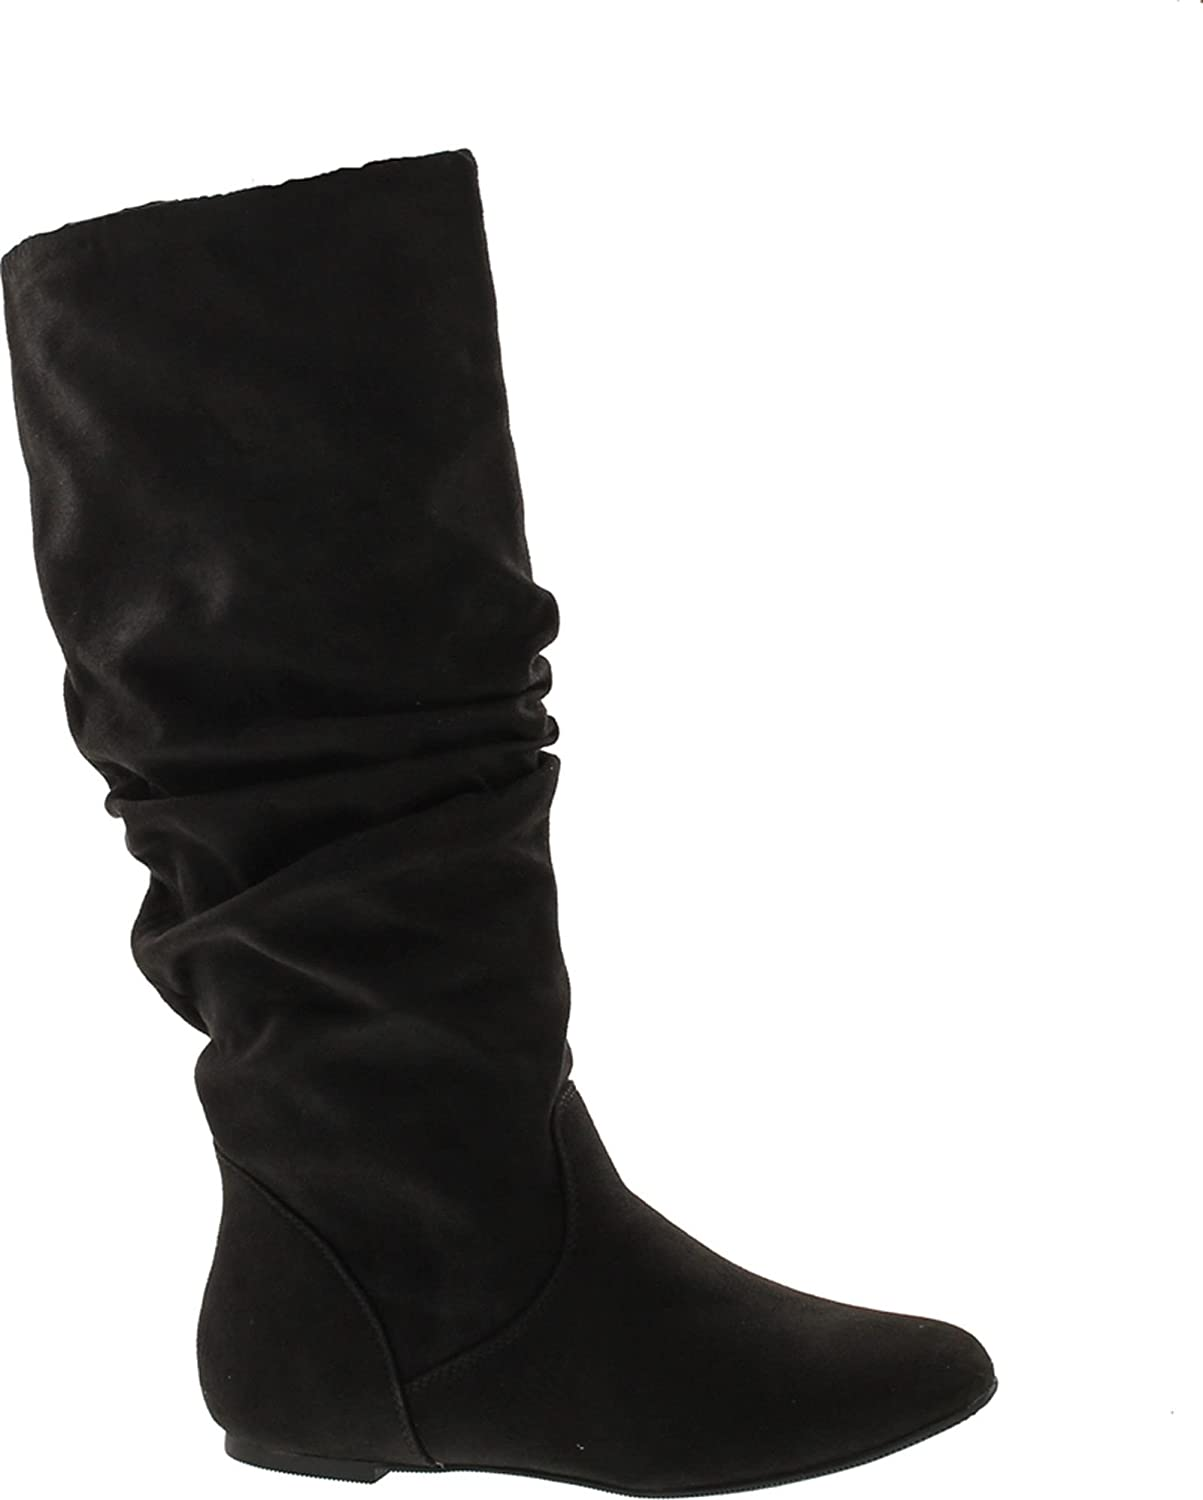 West Blvd Saigon Slouch Slouch Boots